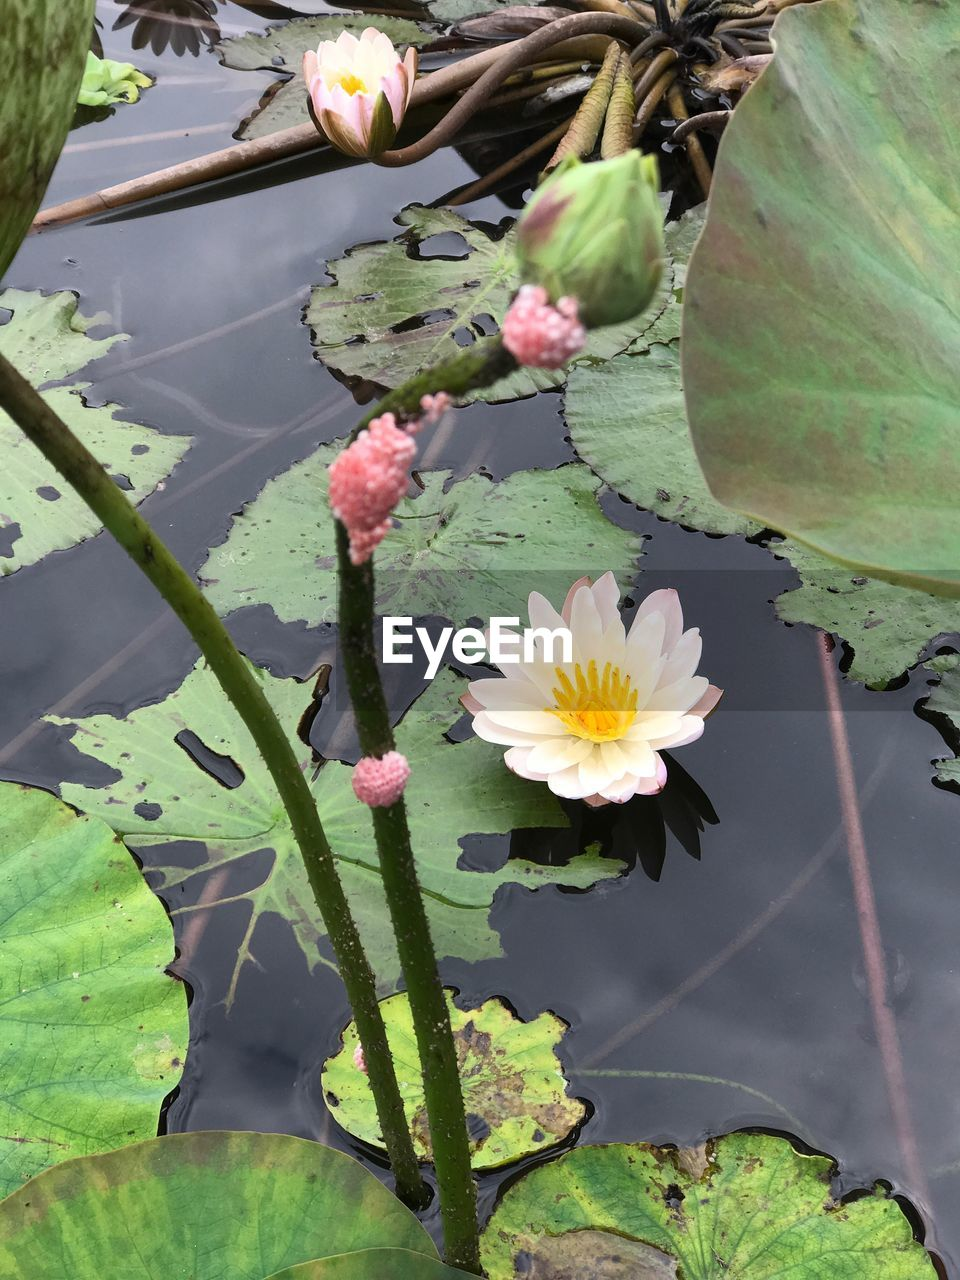 flower, growth, fragility, freshness, beauty in nature, nature, plant, flower head, petal, leaf, no people, day, high angle view, green color, outdoors, water lily, close-up, springtime, blooming, lotus water lily, water, lily pad, animal themes